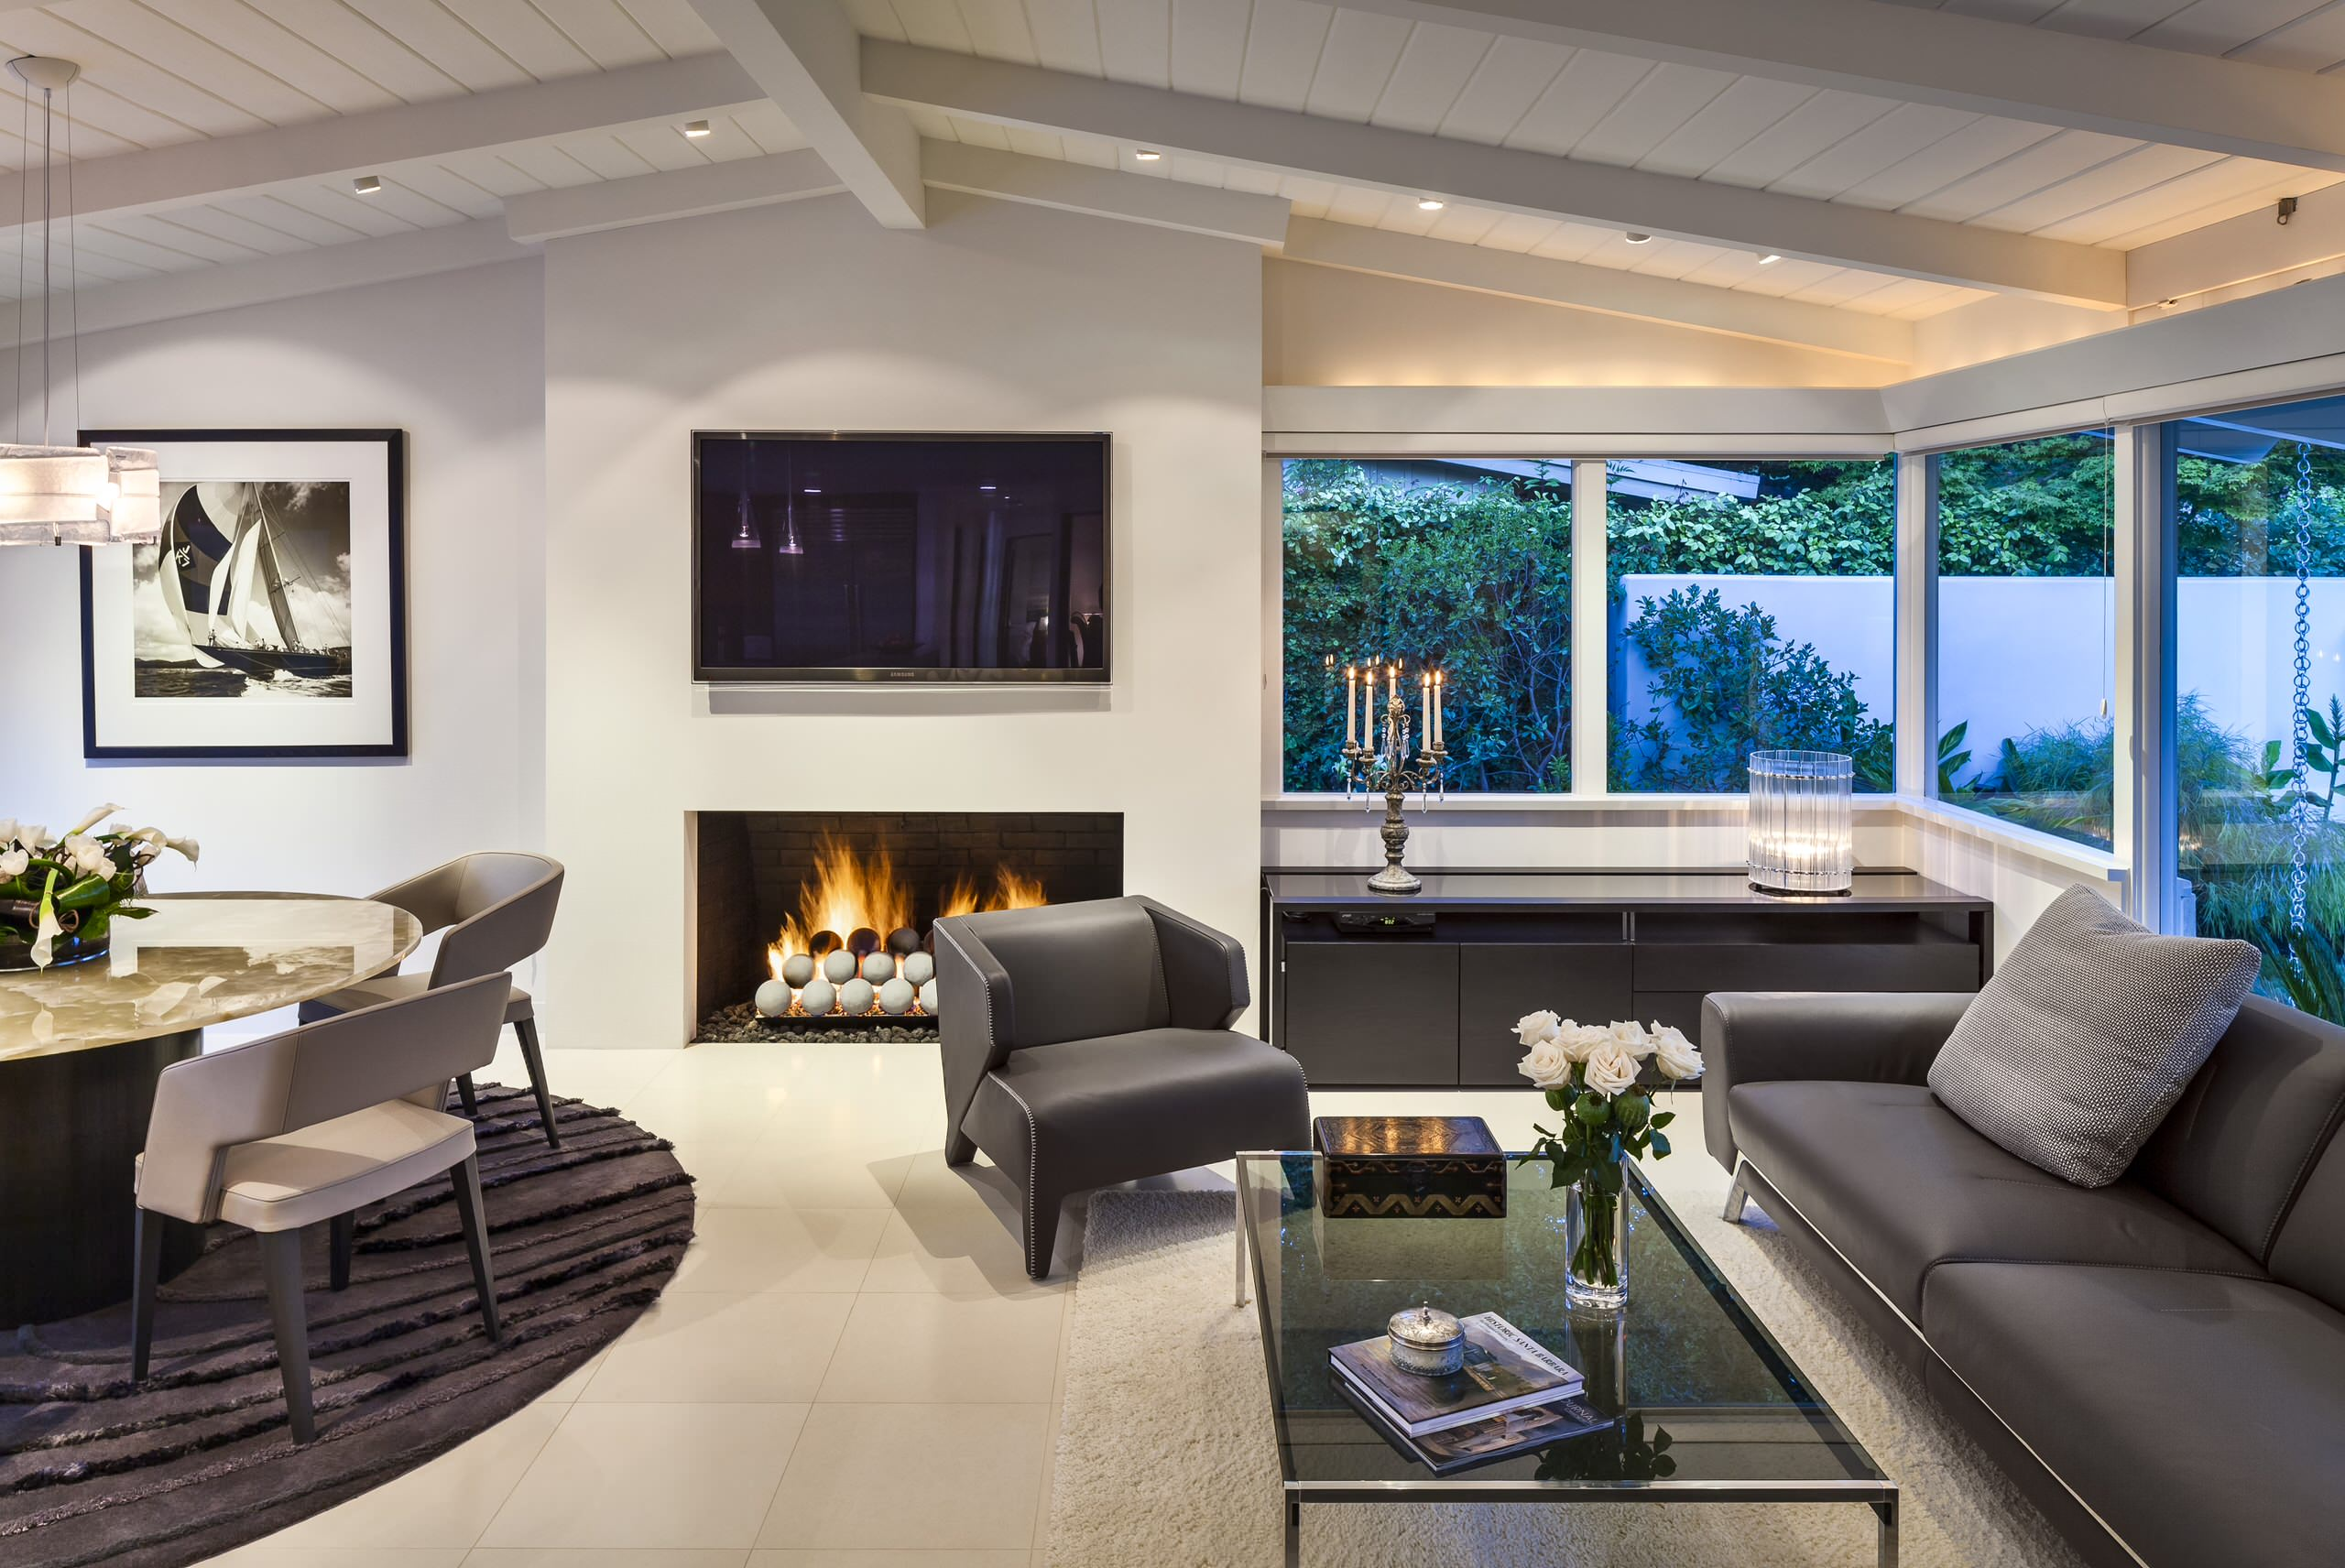 Living room in light and neutral tones